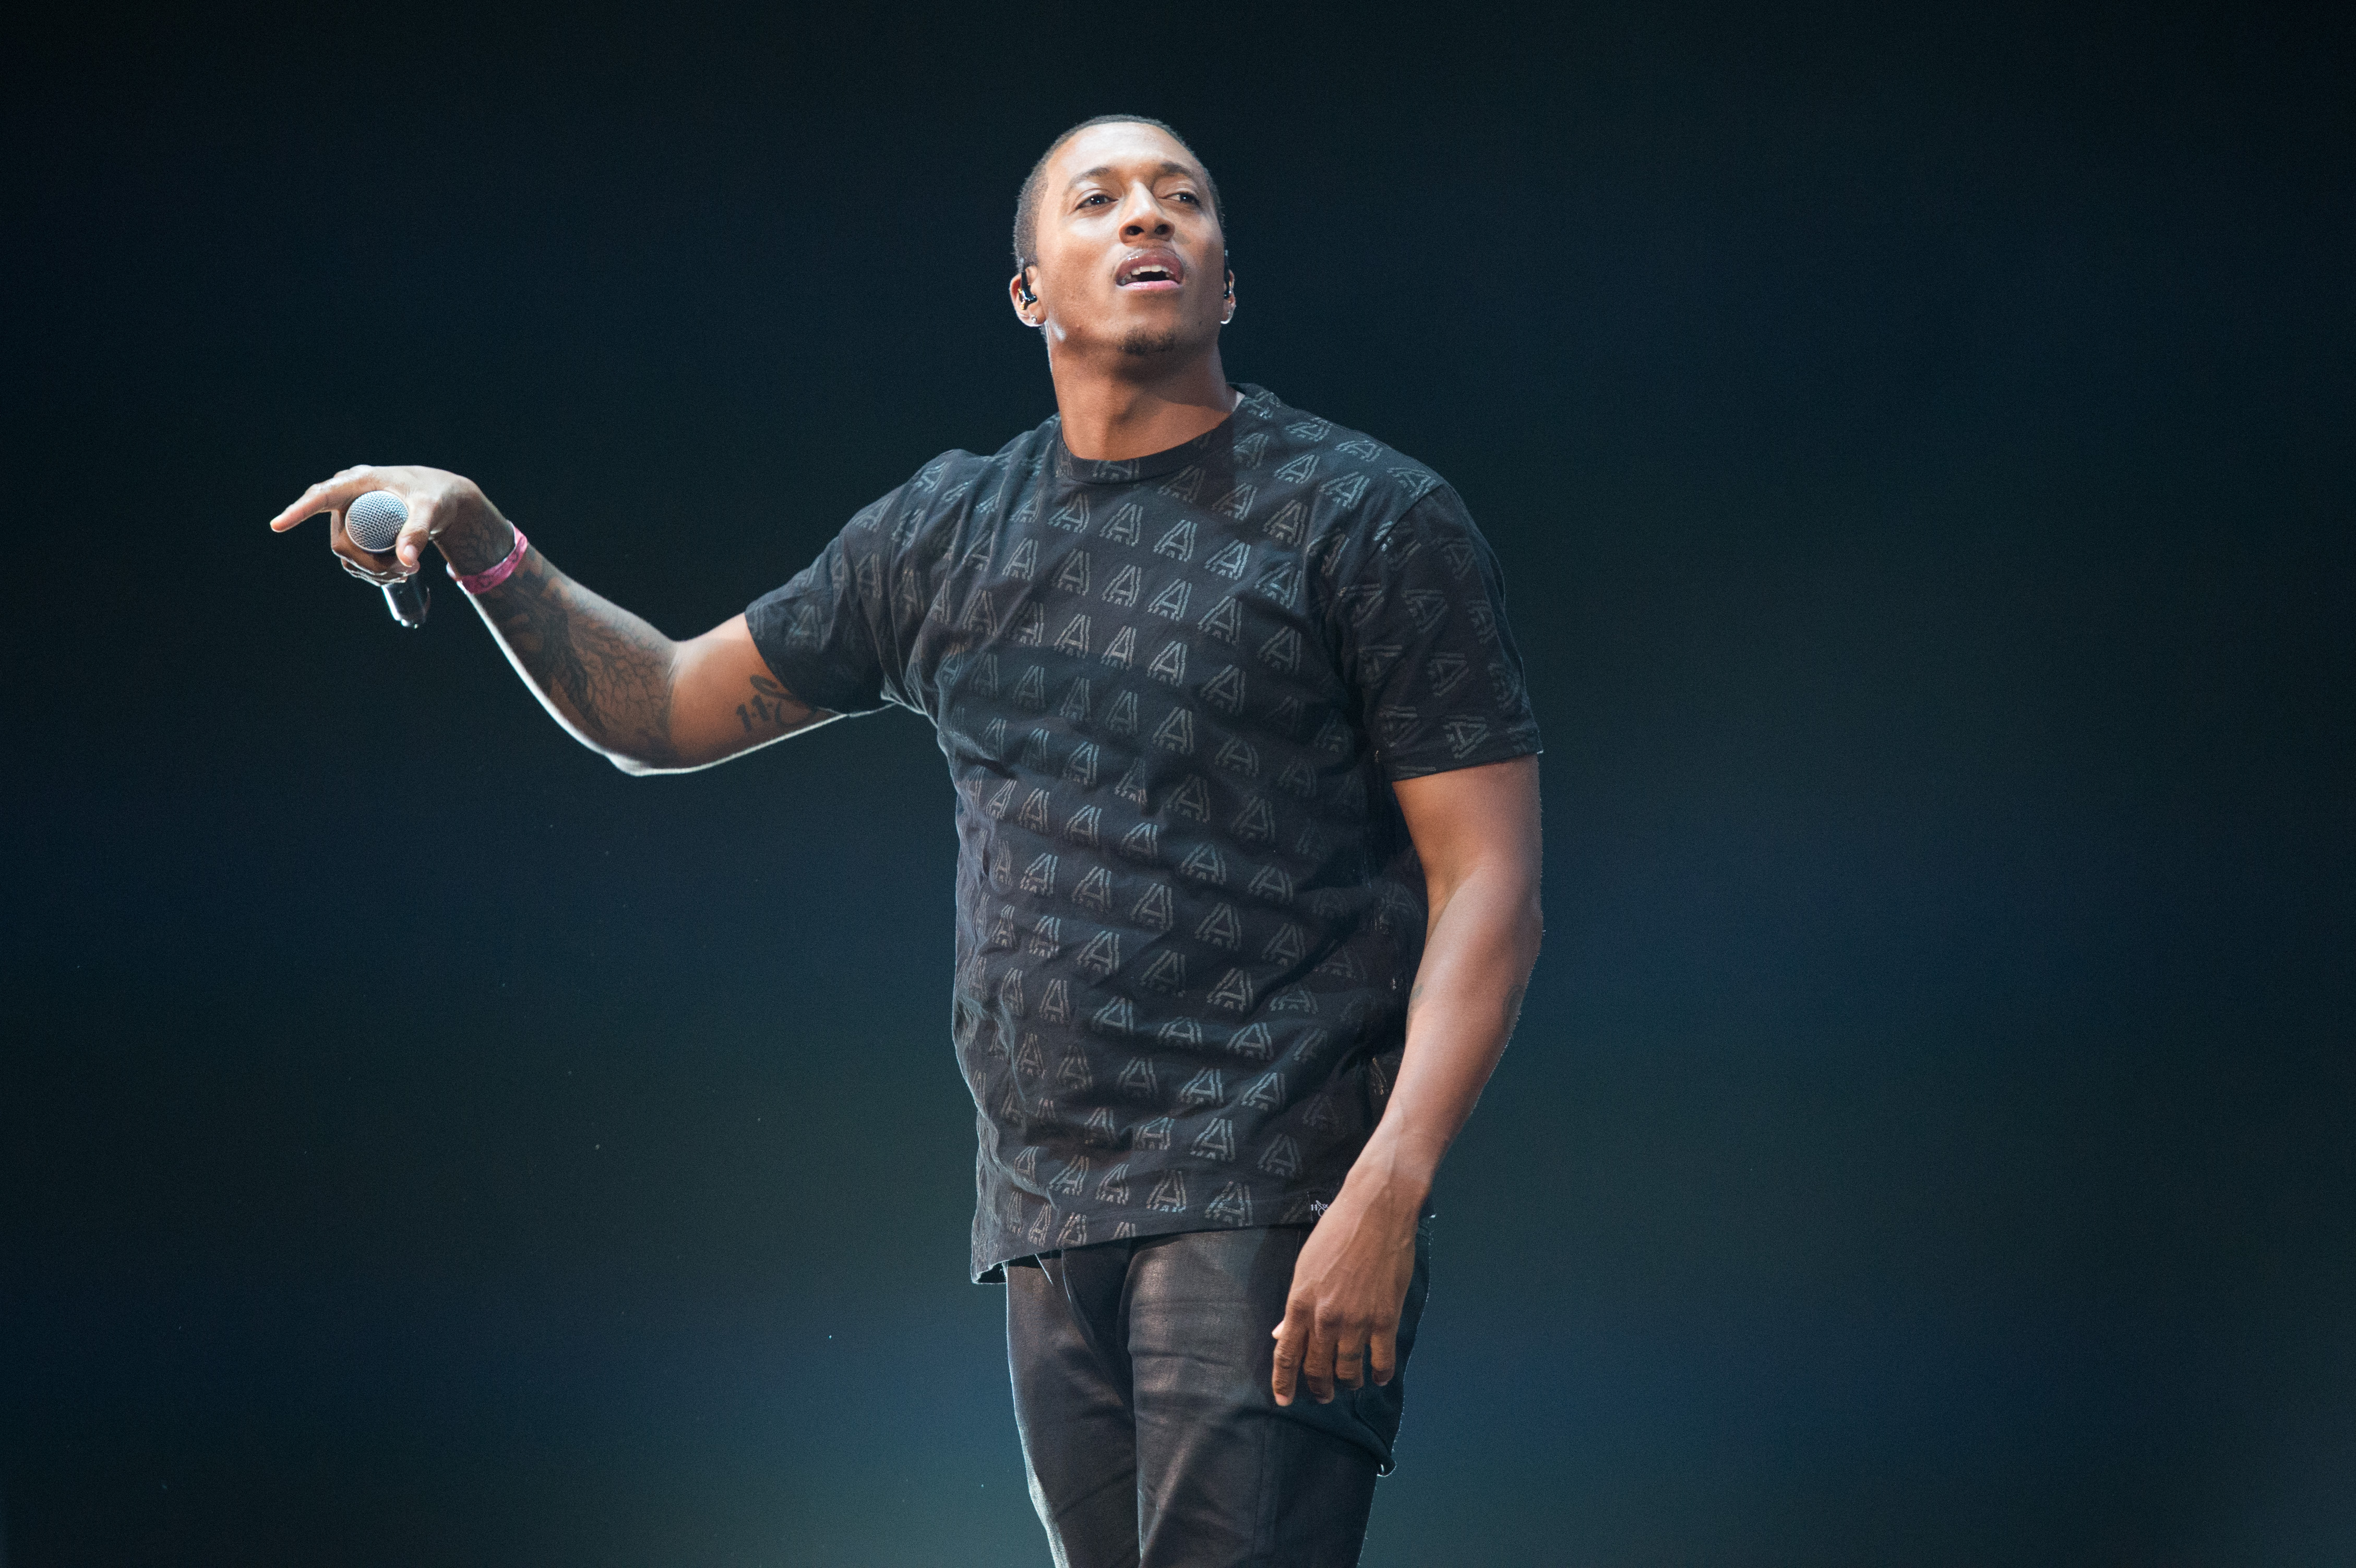 Rapper Lecrae Takes Artist of the Year at Dove Awards